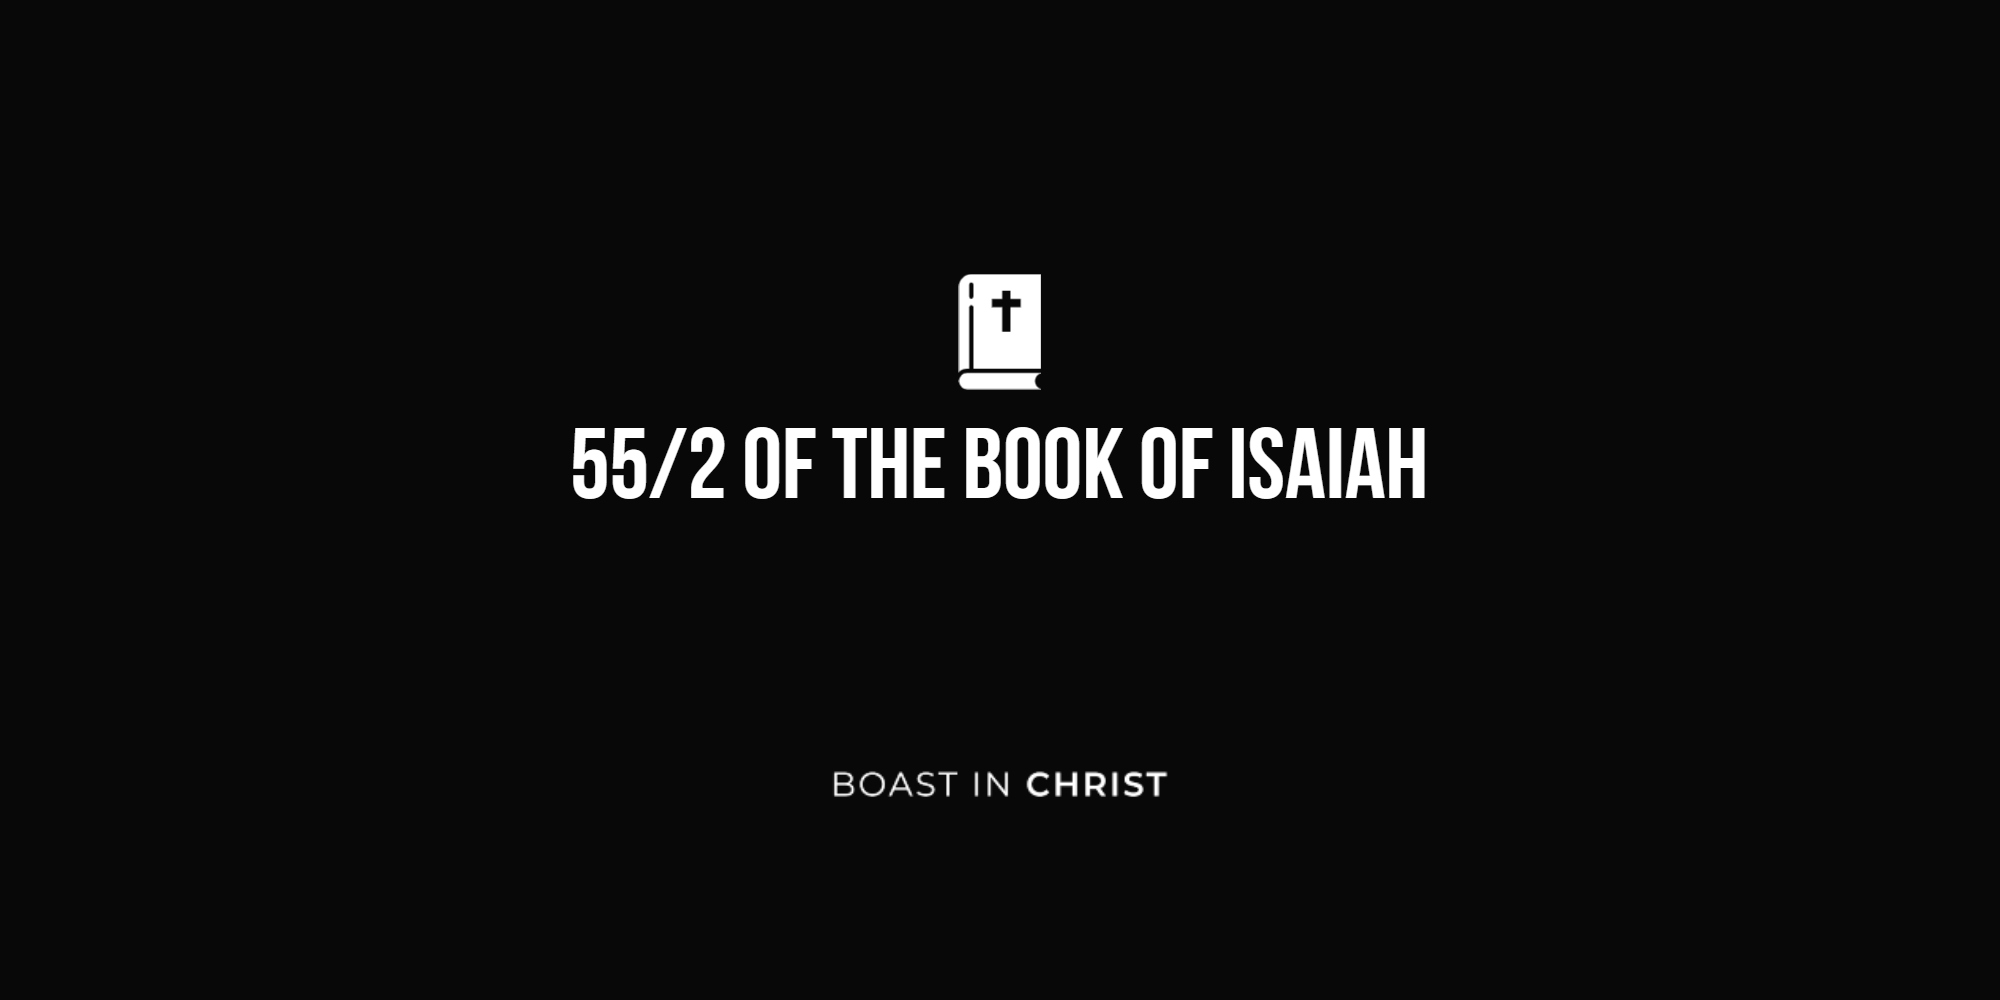 55/2 of The Book Isaiah